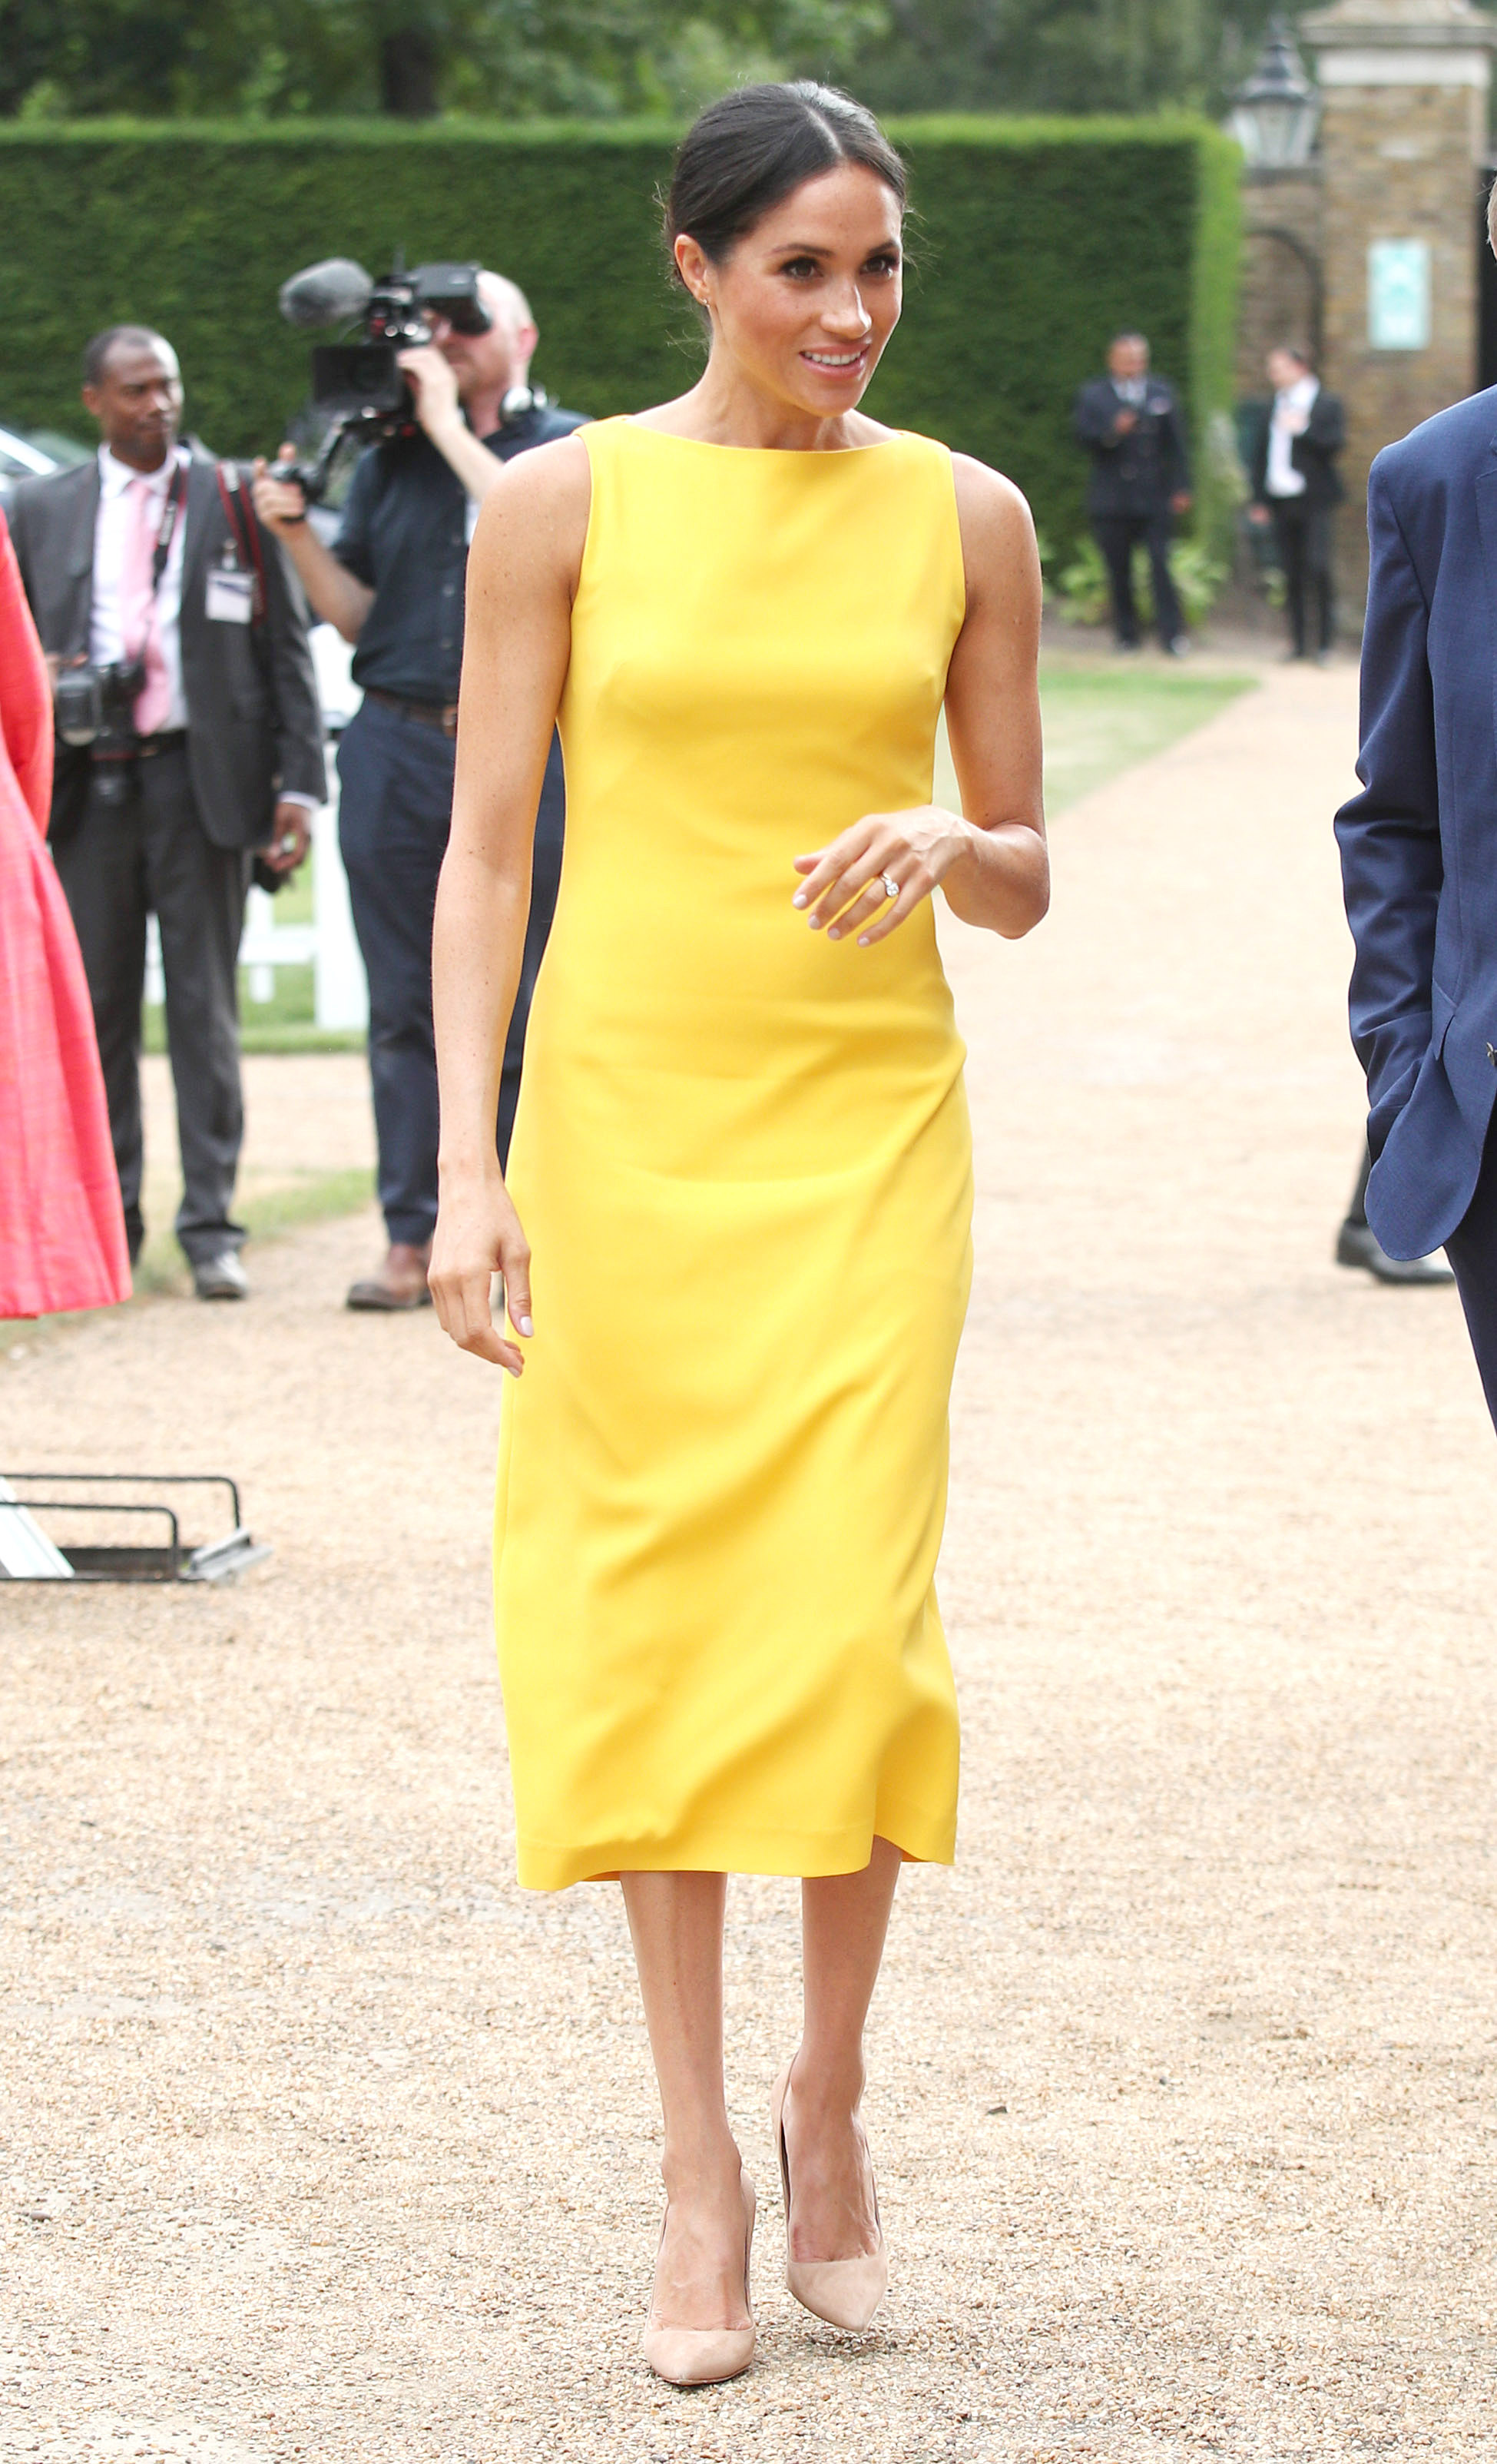 Meghan, Duchess of Sussex attends the Your Commonwealth Youth Challenge reception at Marlborough House on July 05, 2018 in London, England. (Getty Images)